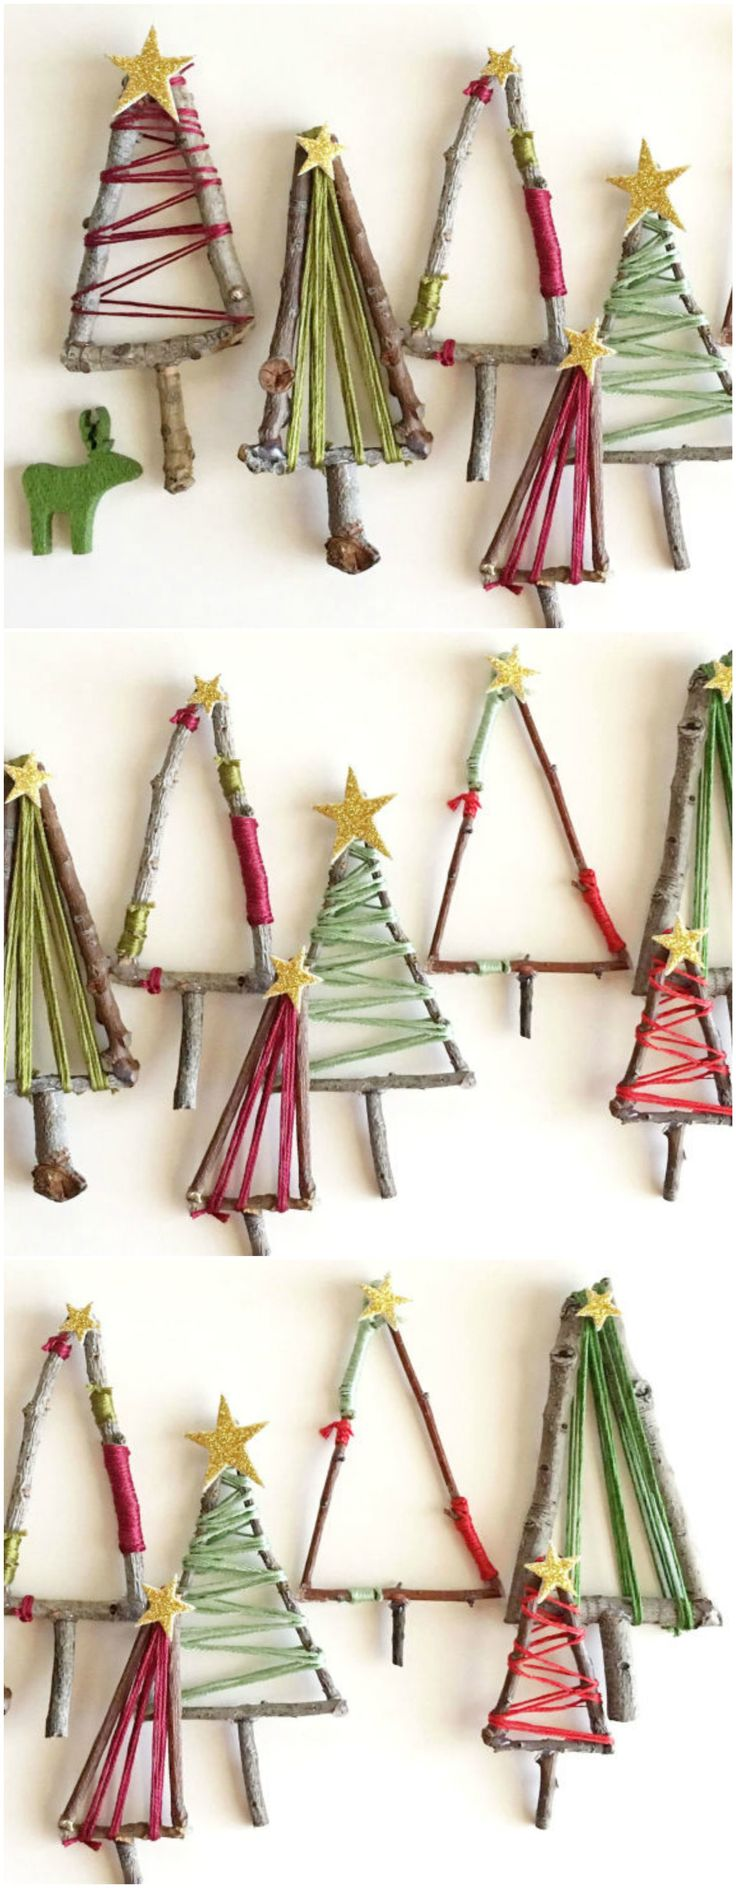 The kids will love making these natural twig Christmas trees that can be hung up as decorations, placed around your festive table or added to presents under the tree. Plus, if you're looking to add a little extra to your gift giving this year, these mini festive trees make the perfect present toppers. Click for the full step-by-step.